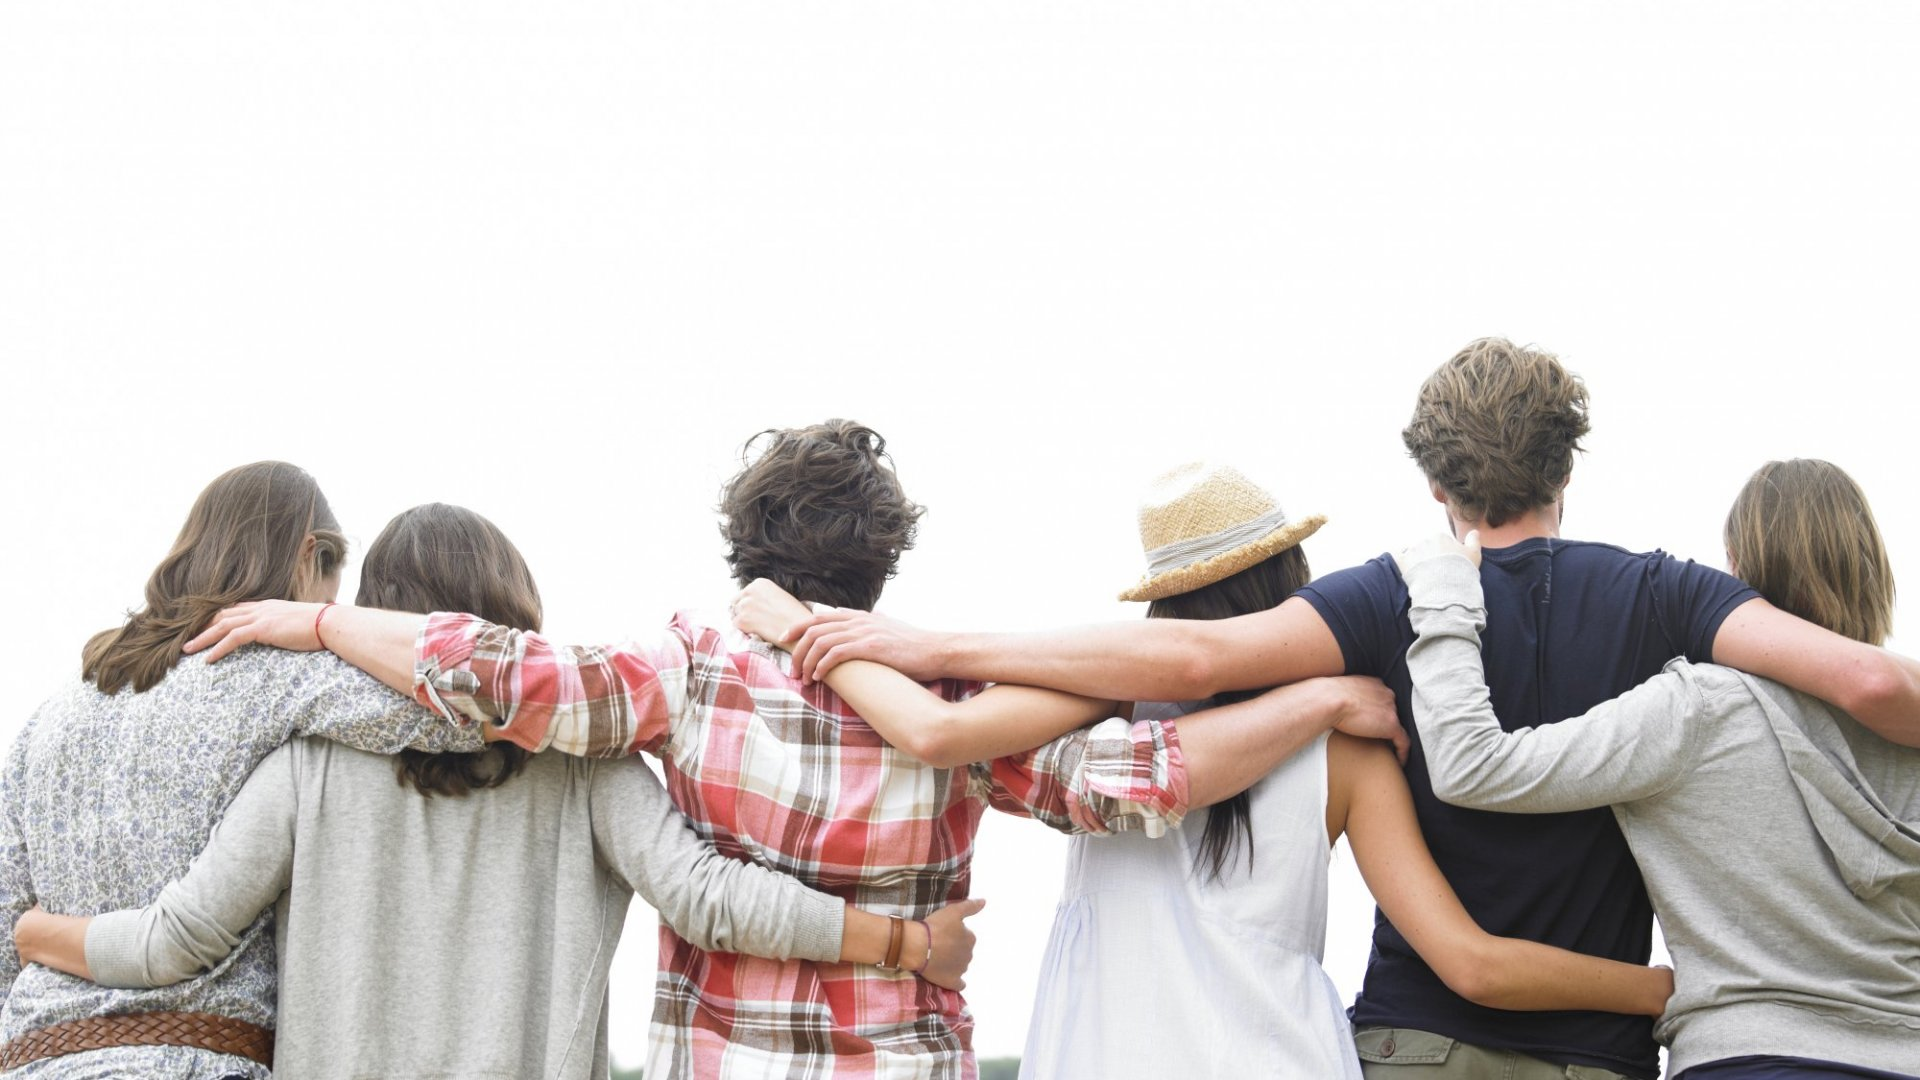 The Math is Clear: Having a Ton of Friends Means Having No Close Friendships